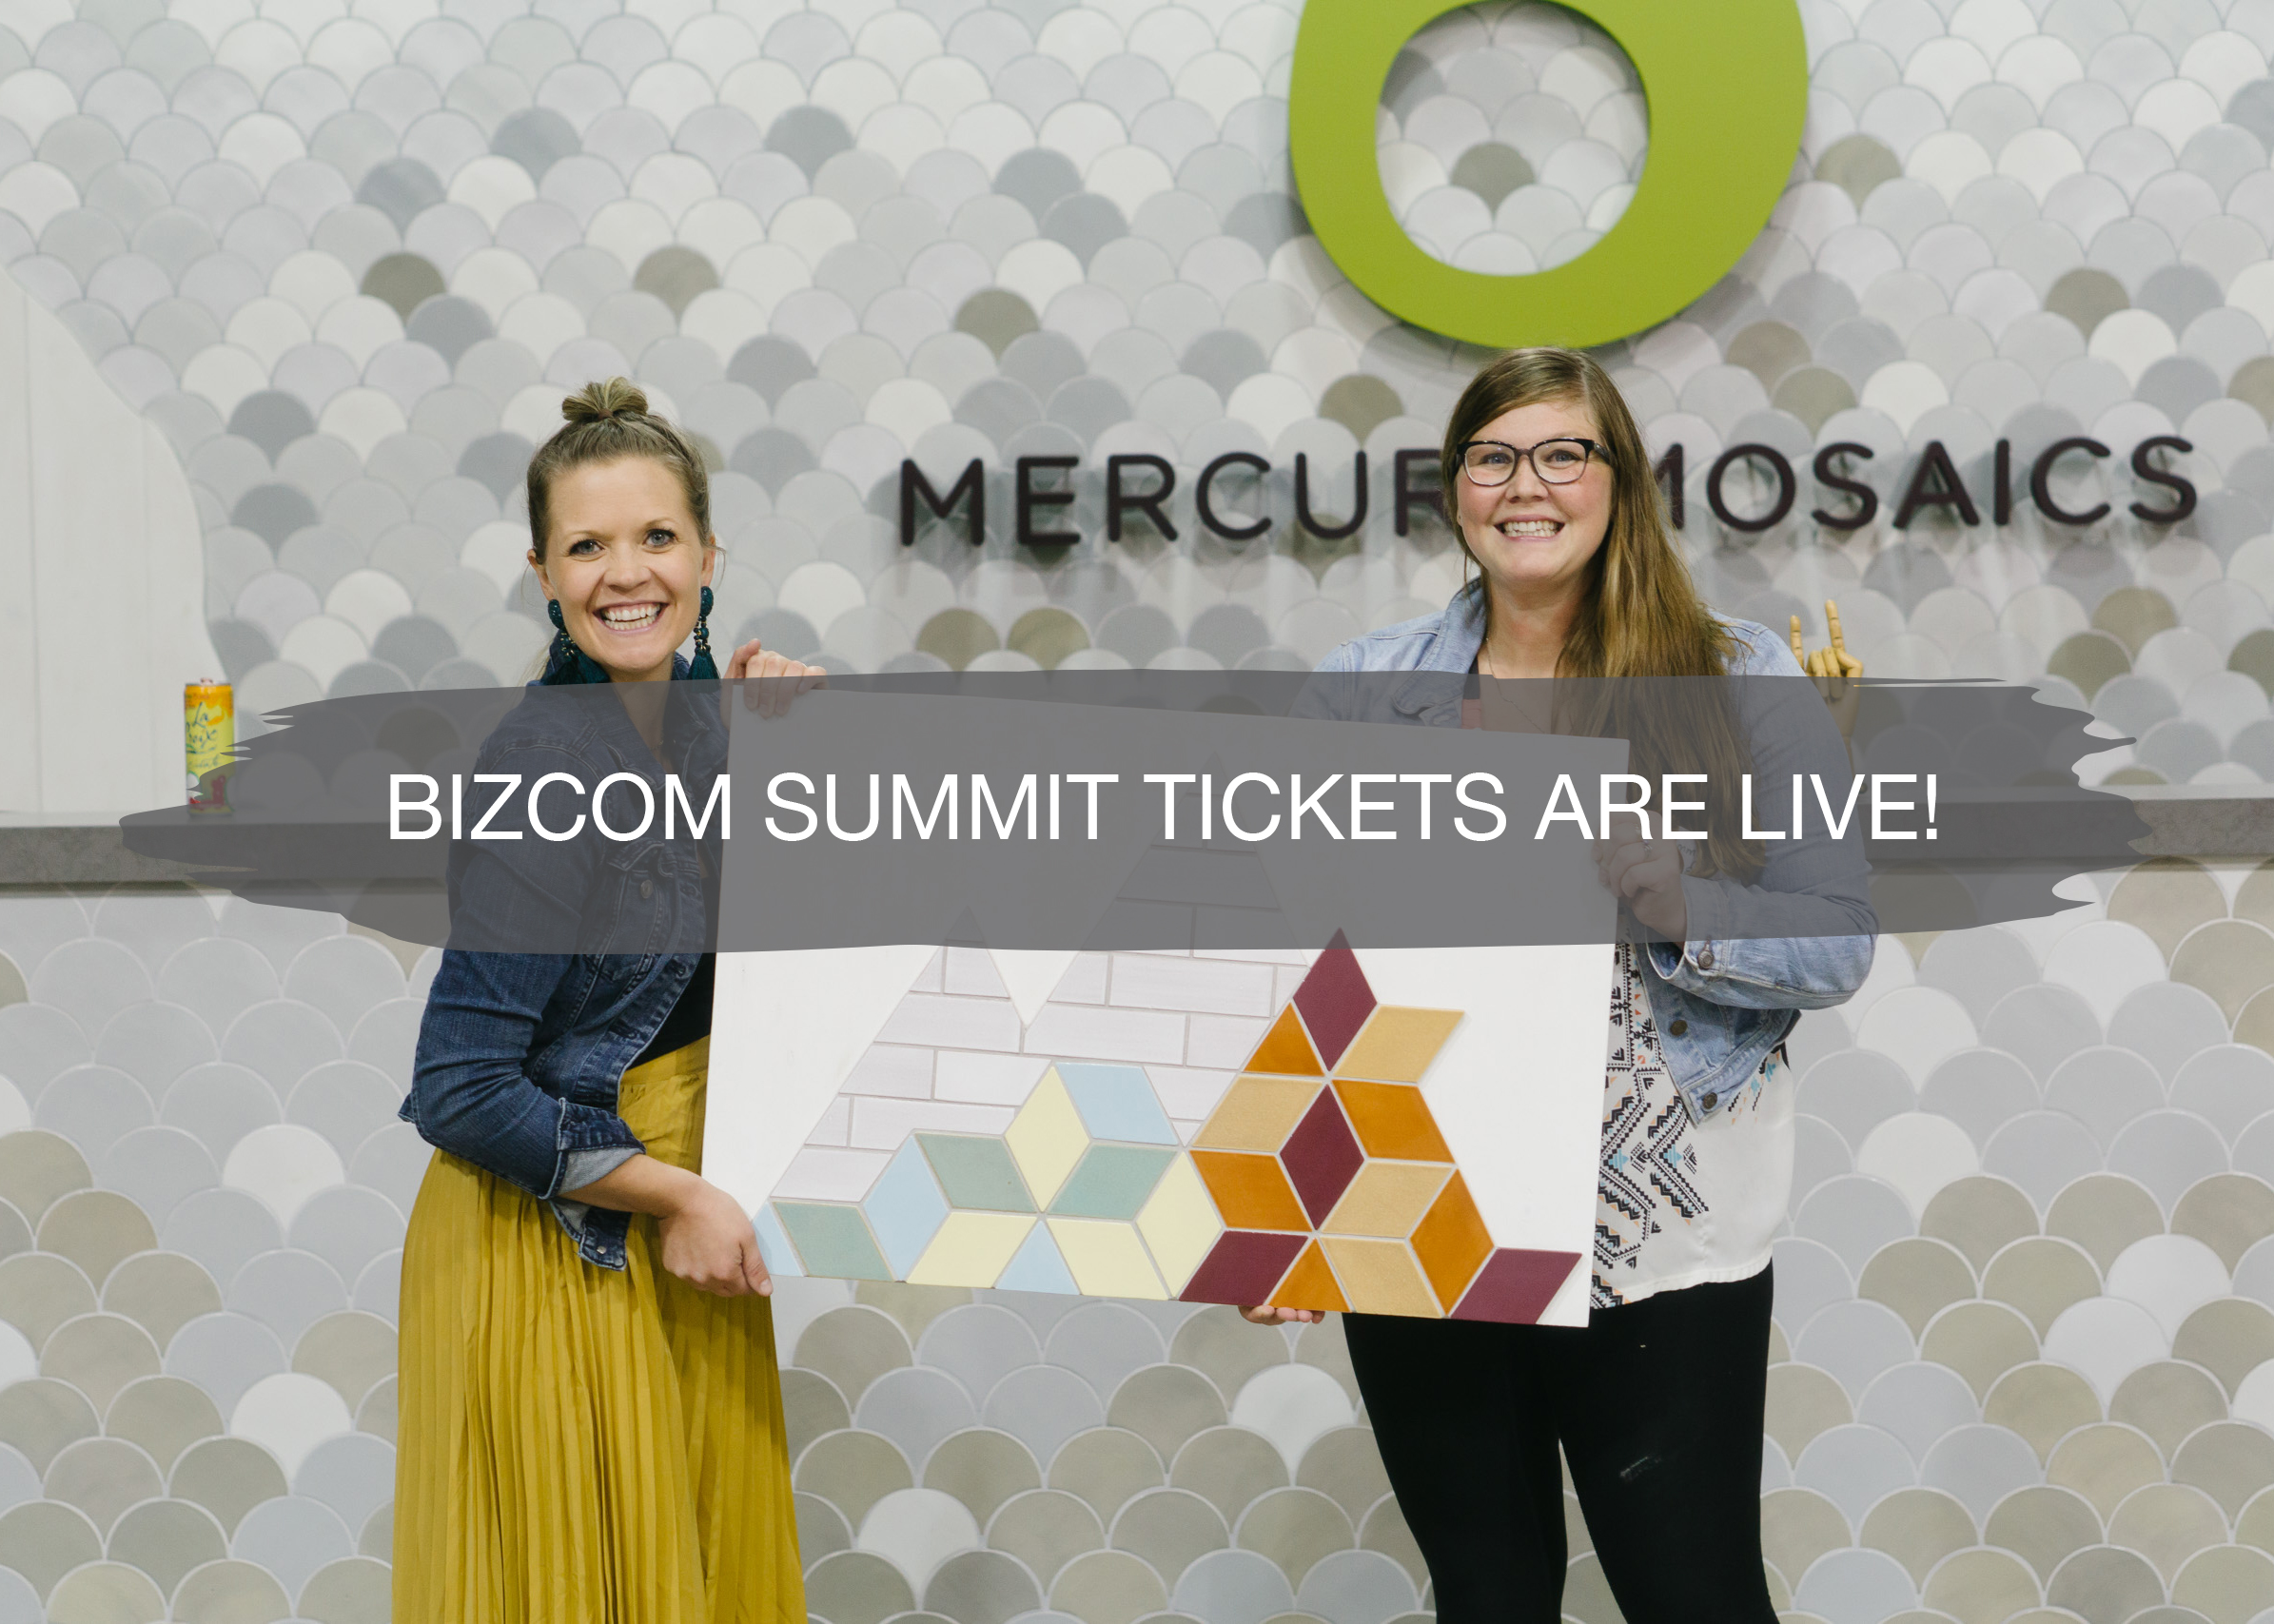 BizCom Summit Tickets are Live | construction2style